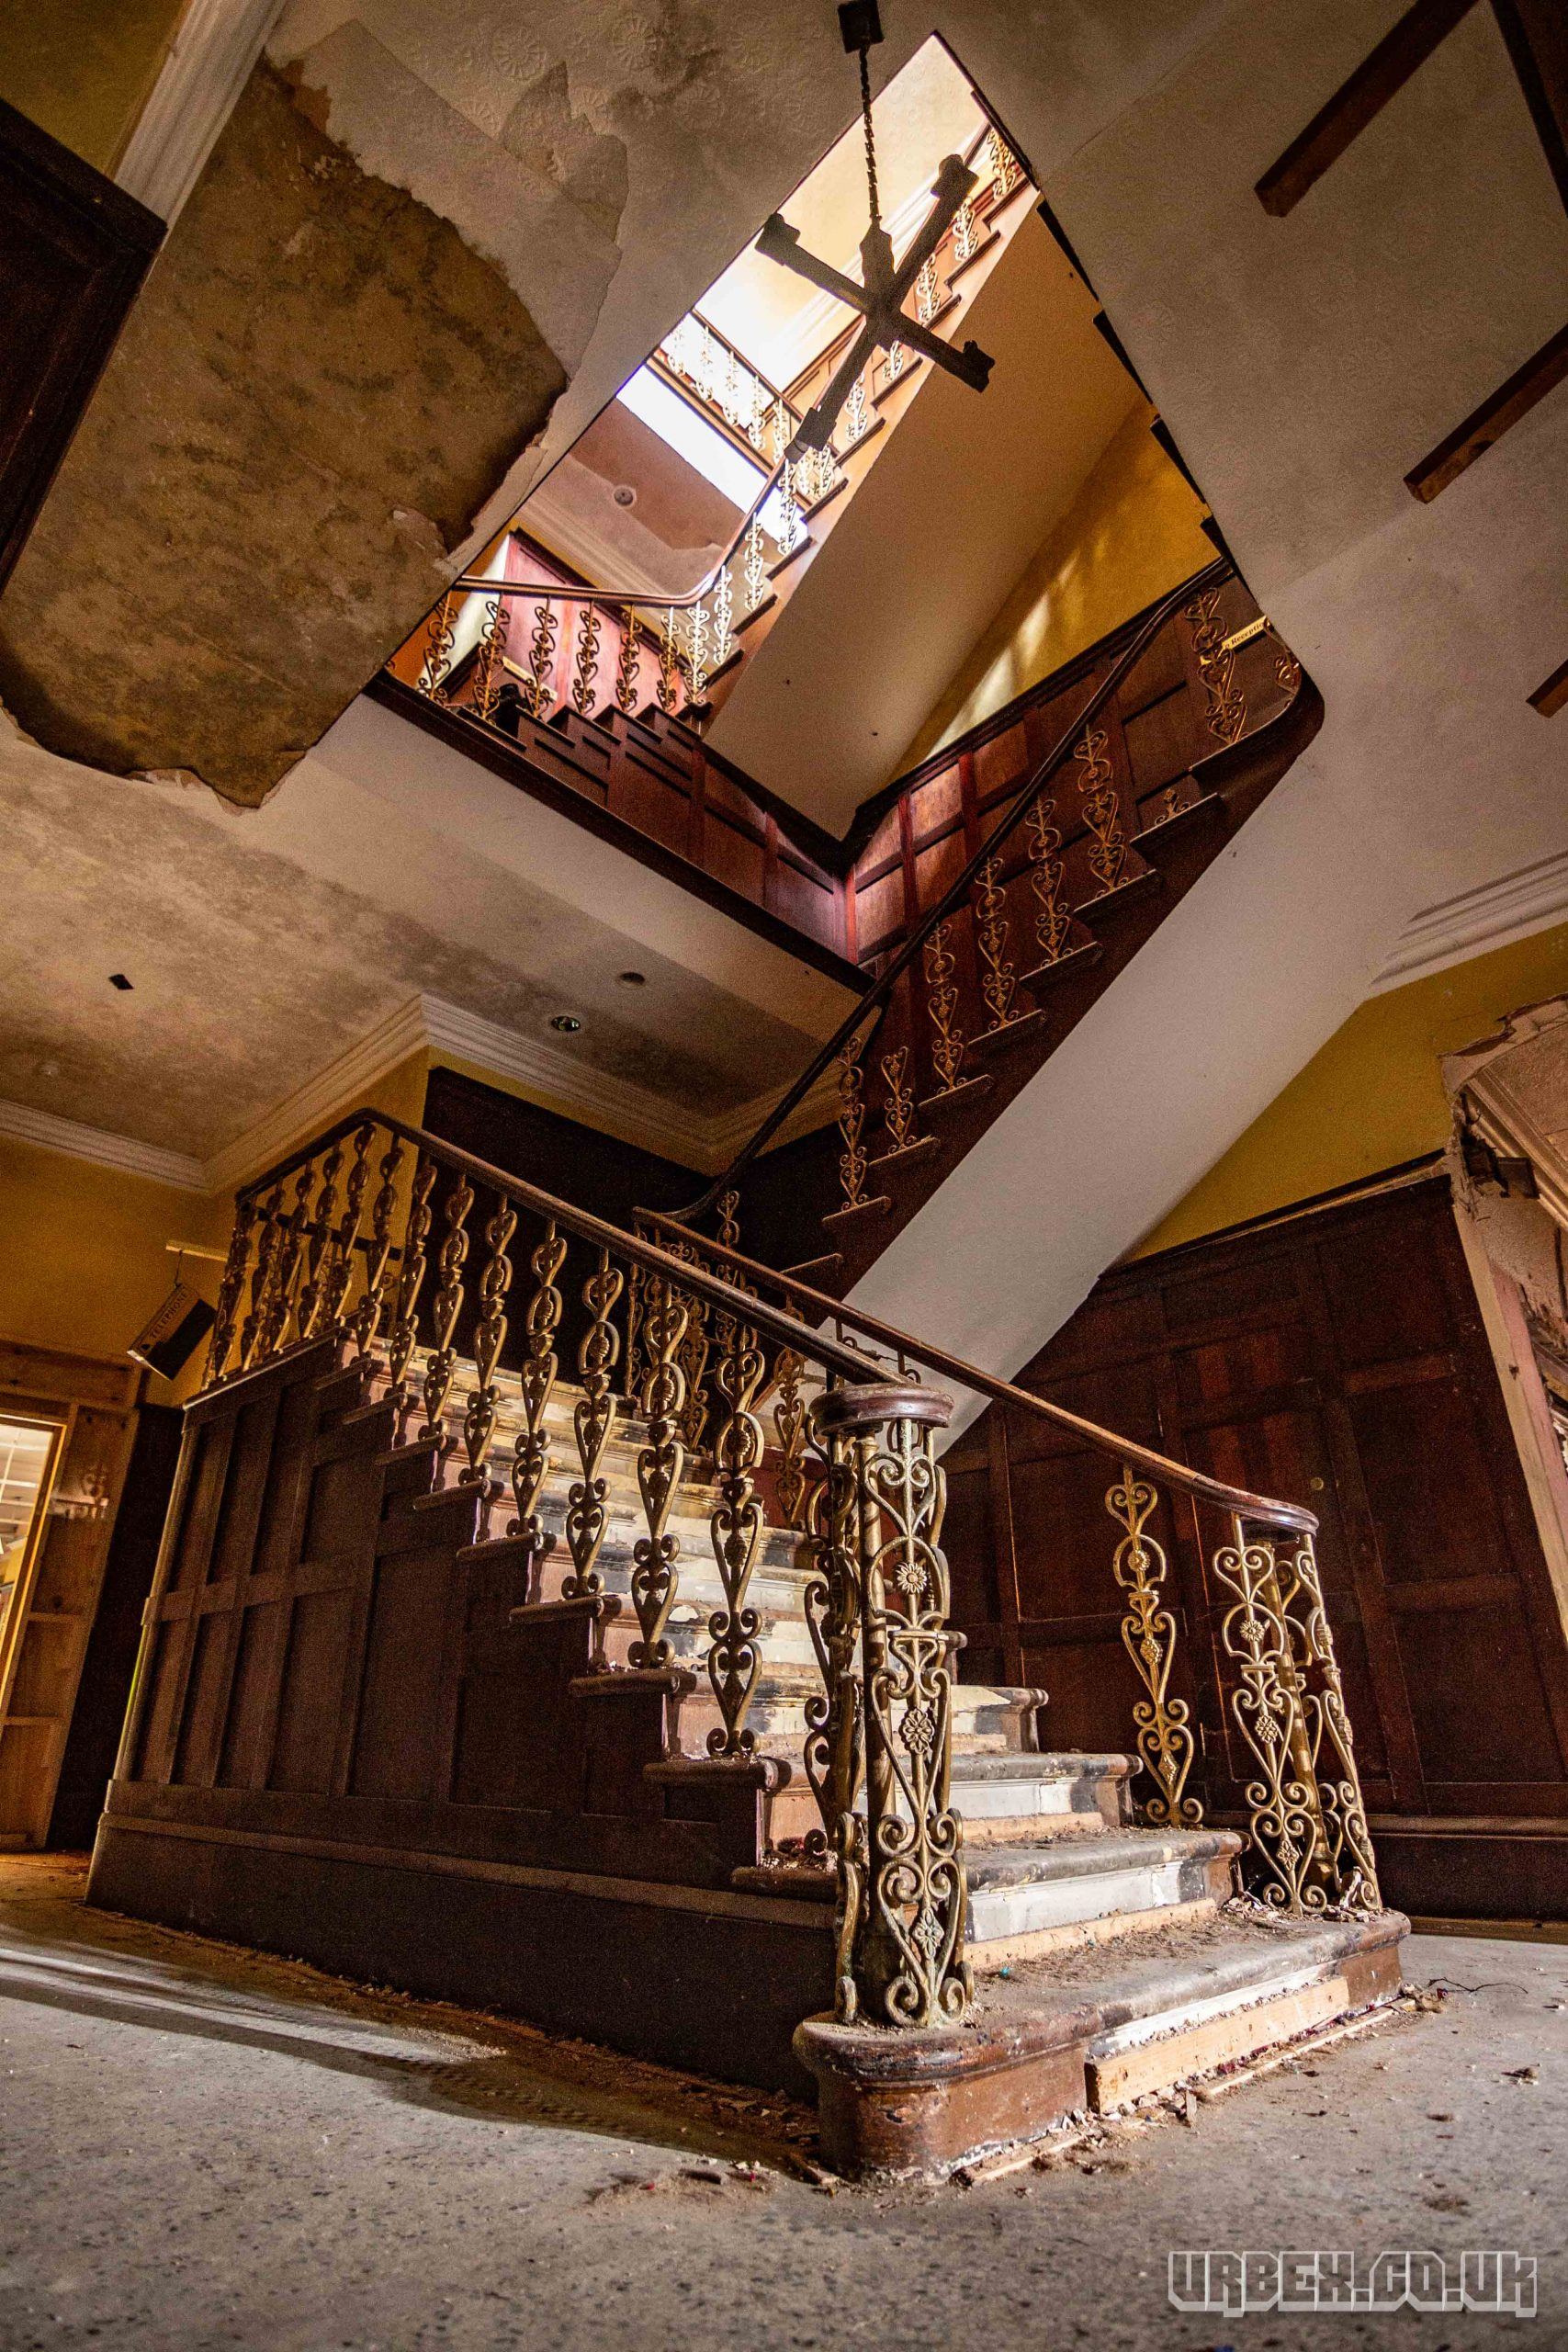 3 story stair case in a derelict hotel